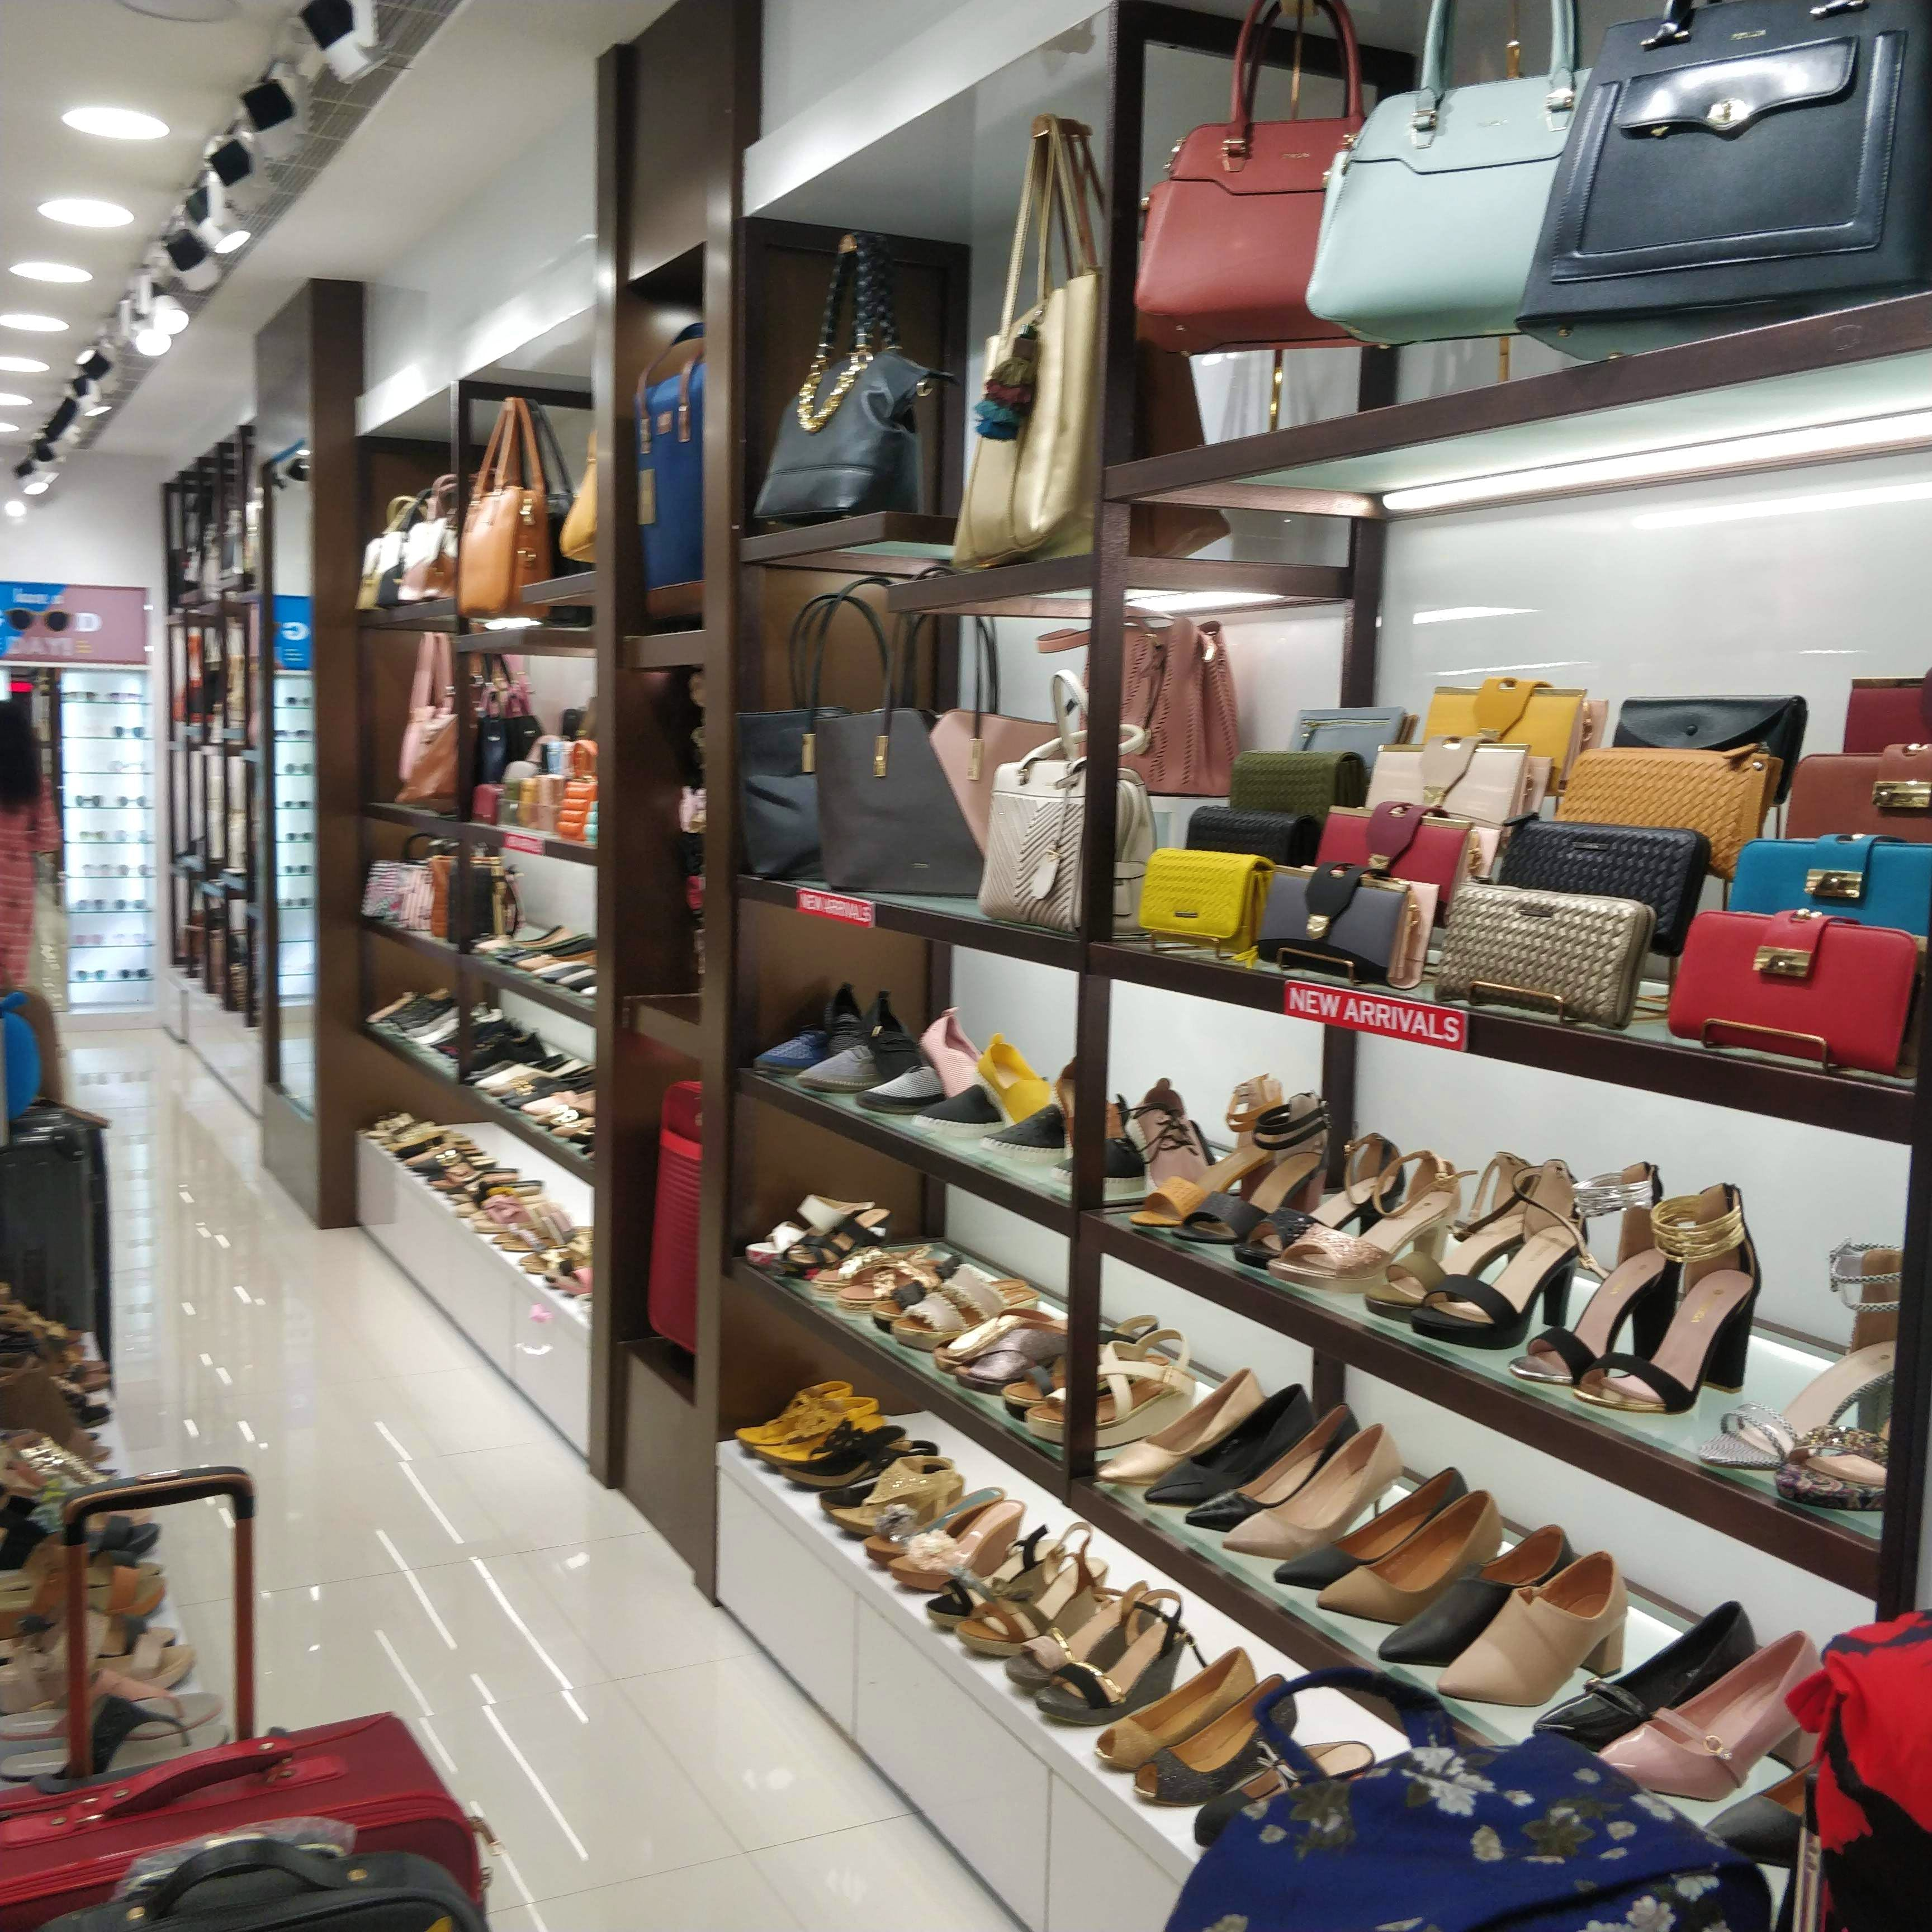 Outlet store,Building,Footwear,Retail,Inventory,Shoe store,Collection,Shoe,Interior design,Display case